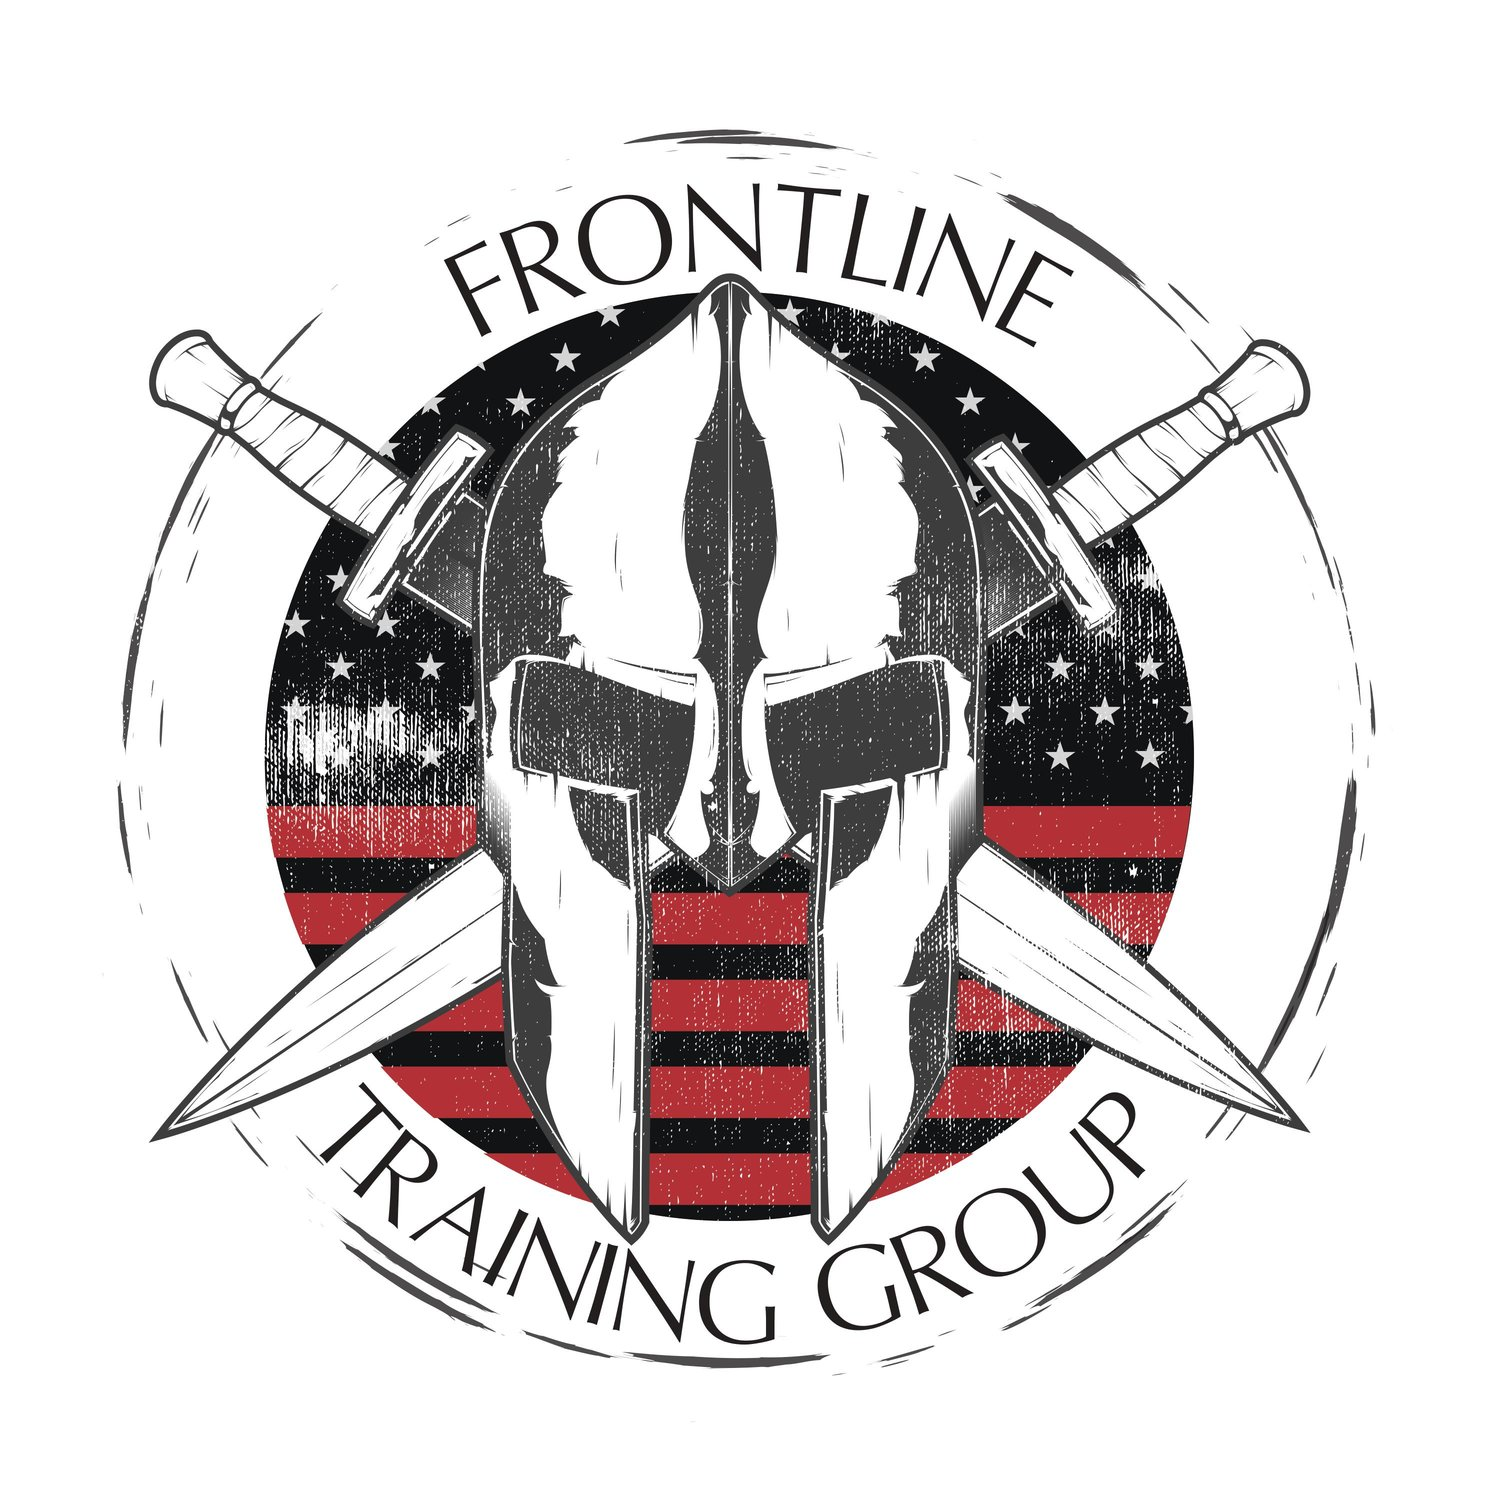 FRONTLINE TRAINING GROUP LLC